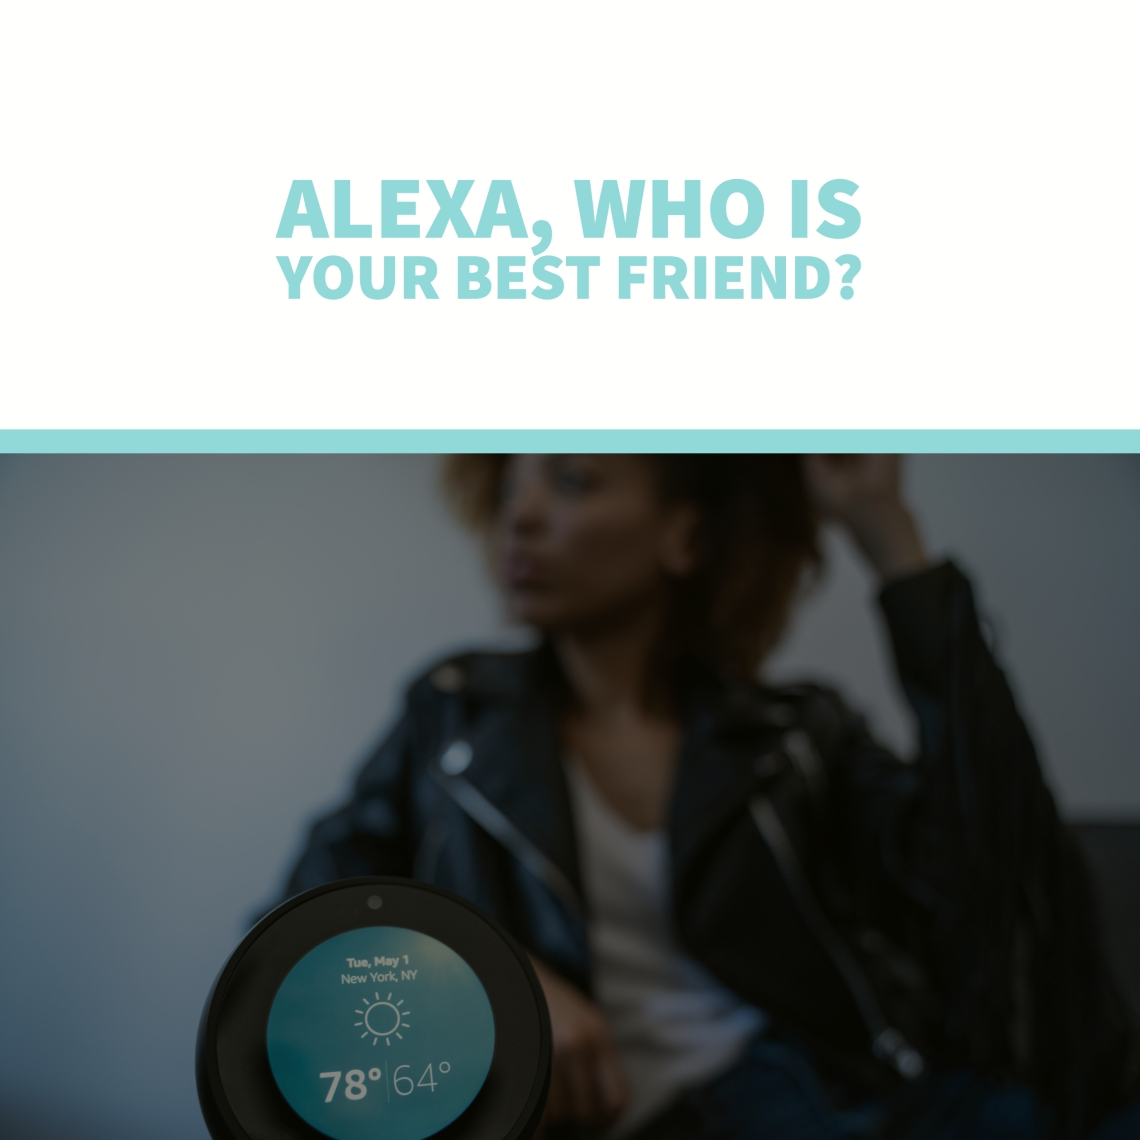 Things to ask Alexa